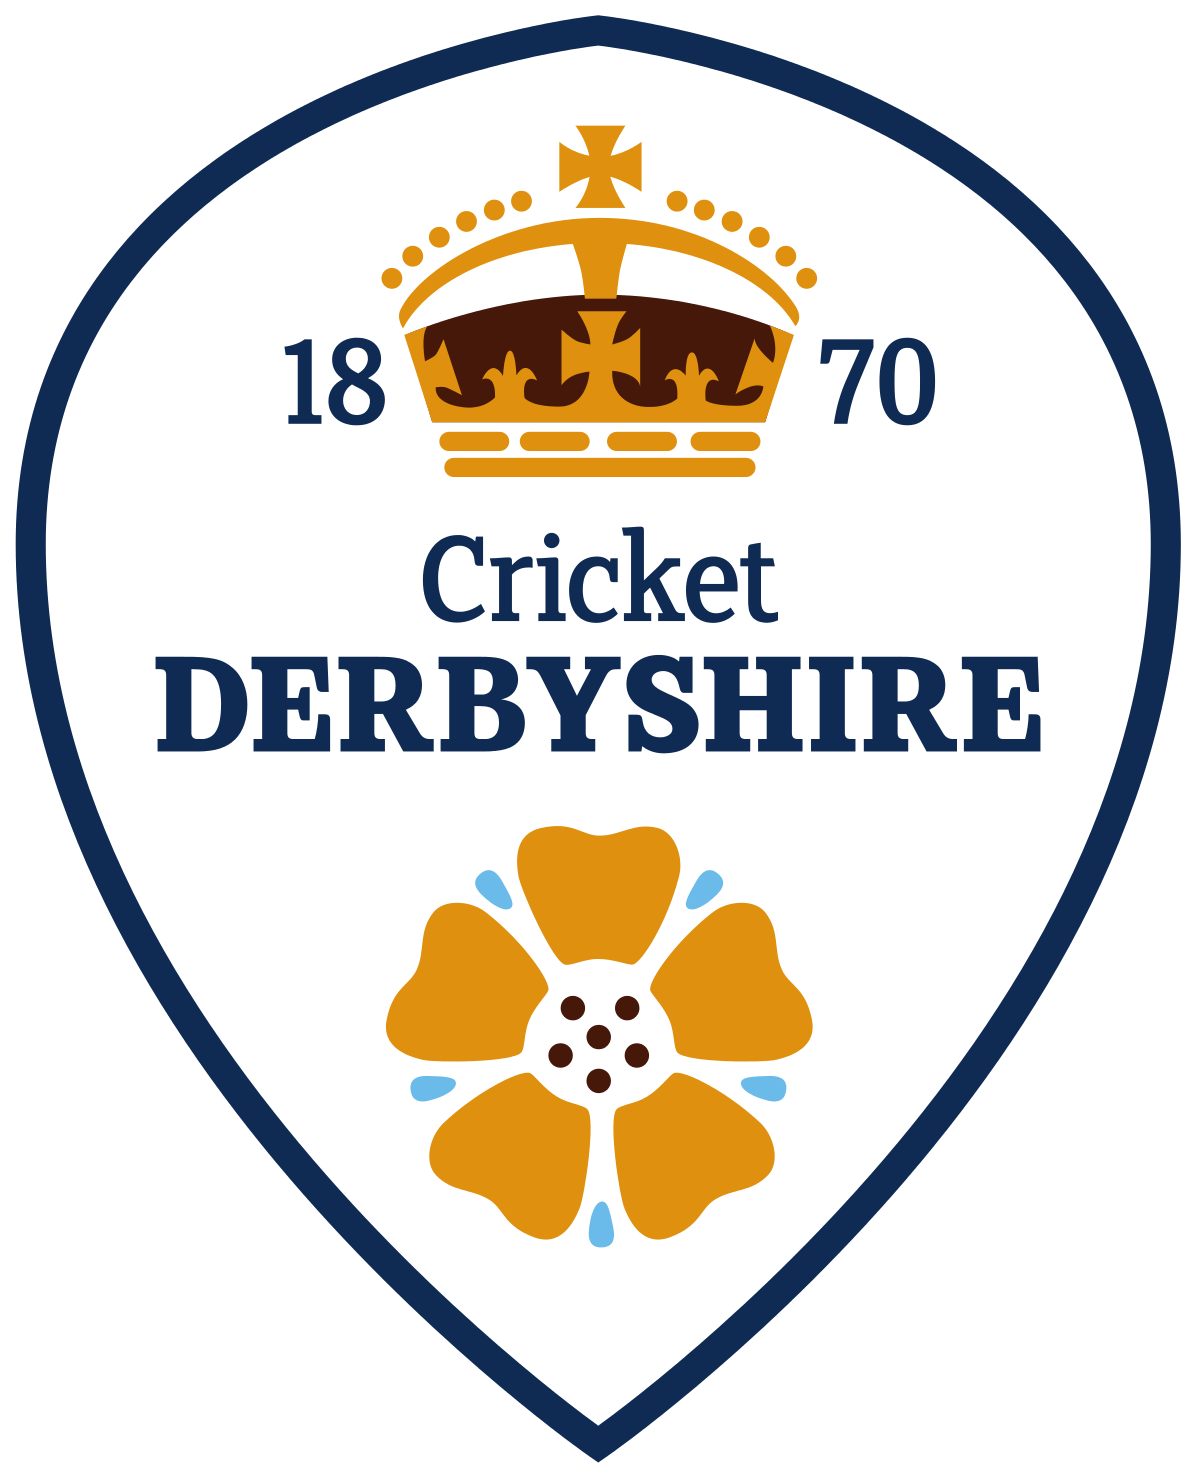 Derbyshire County Cricket Club's logo